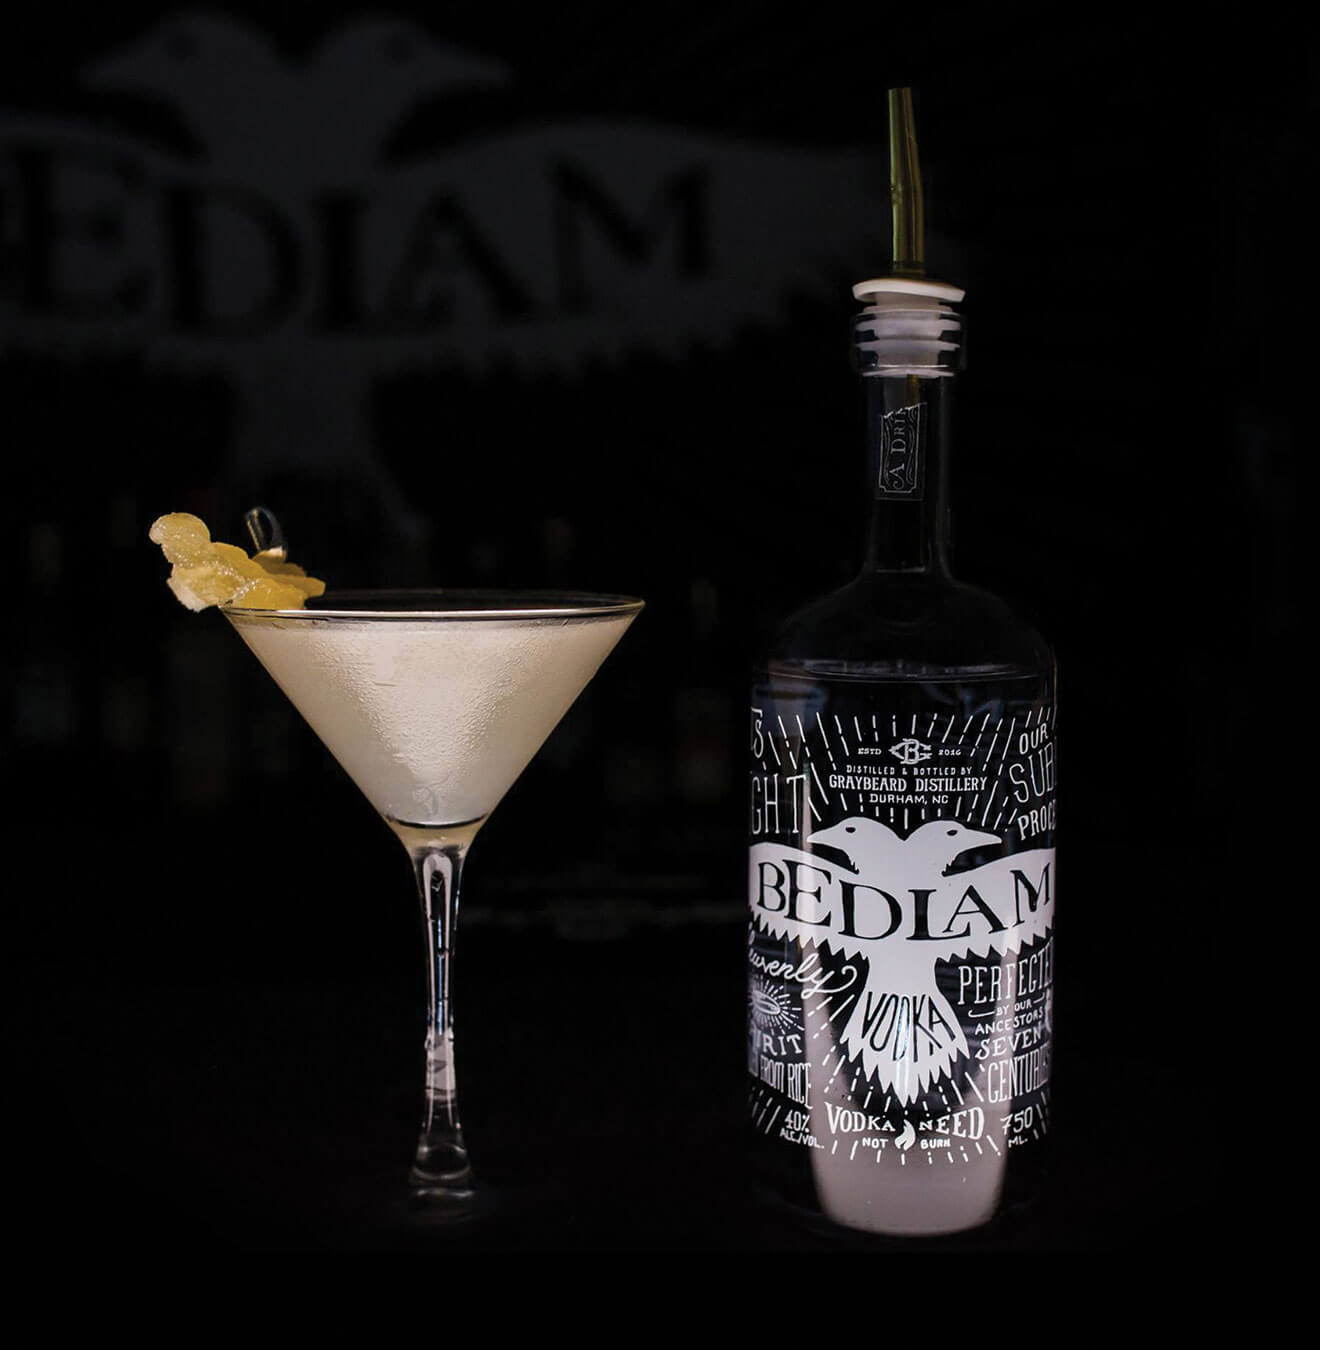 Bedlam Vodka with martini and bottle on black